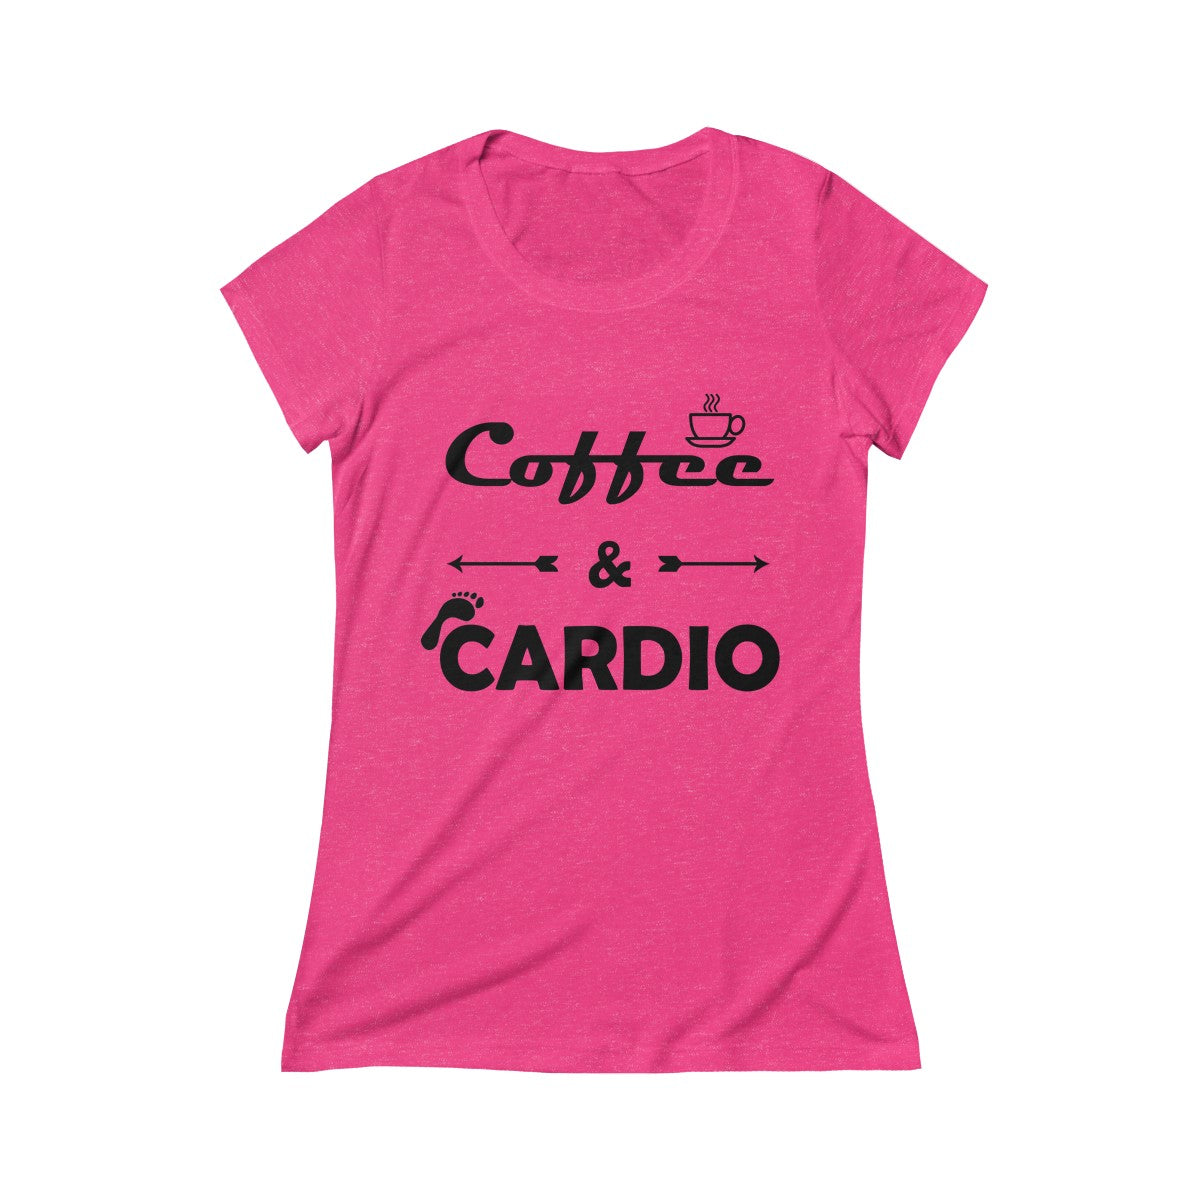 Coffee & Cardio Women's Crew Tee